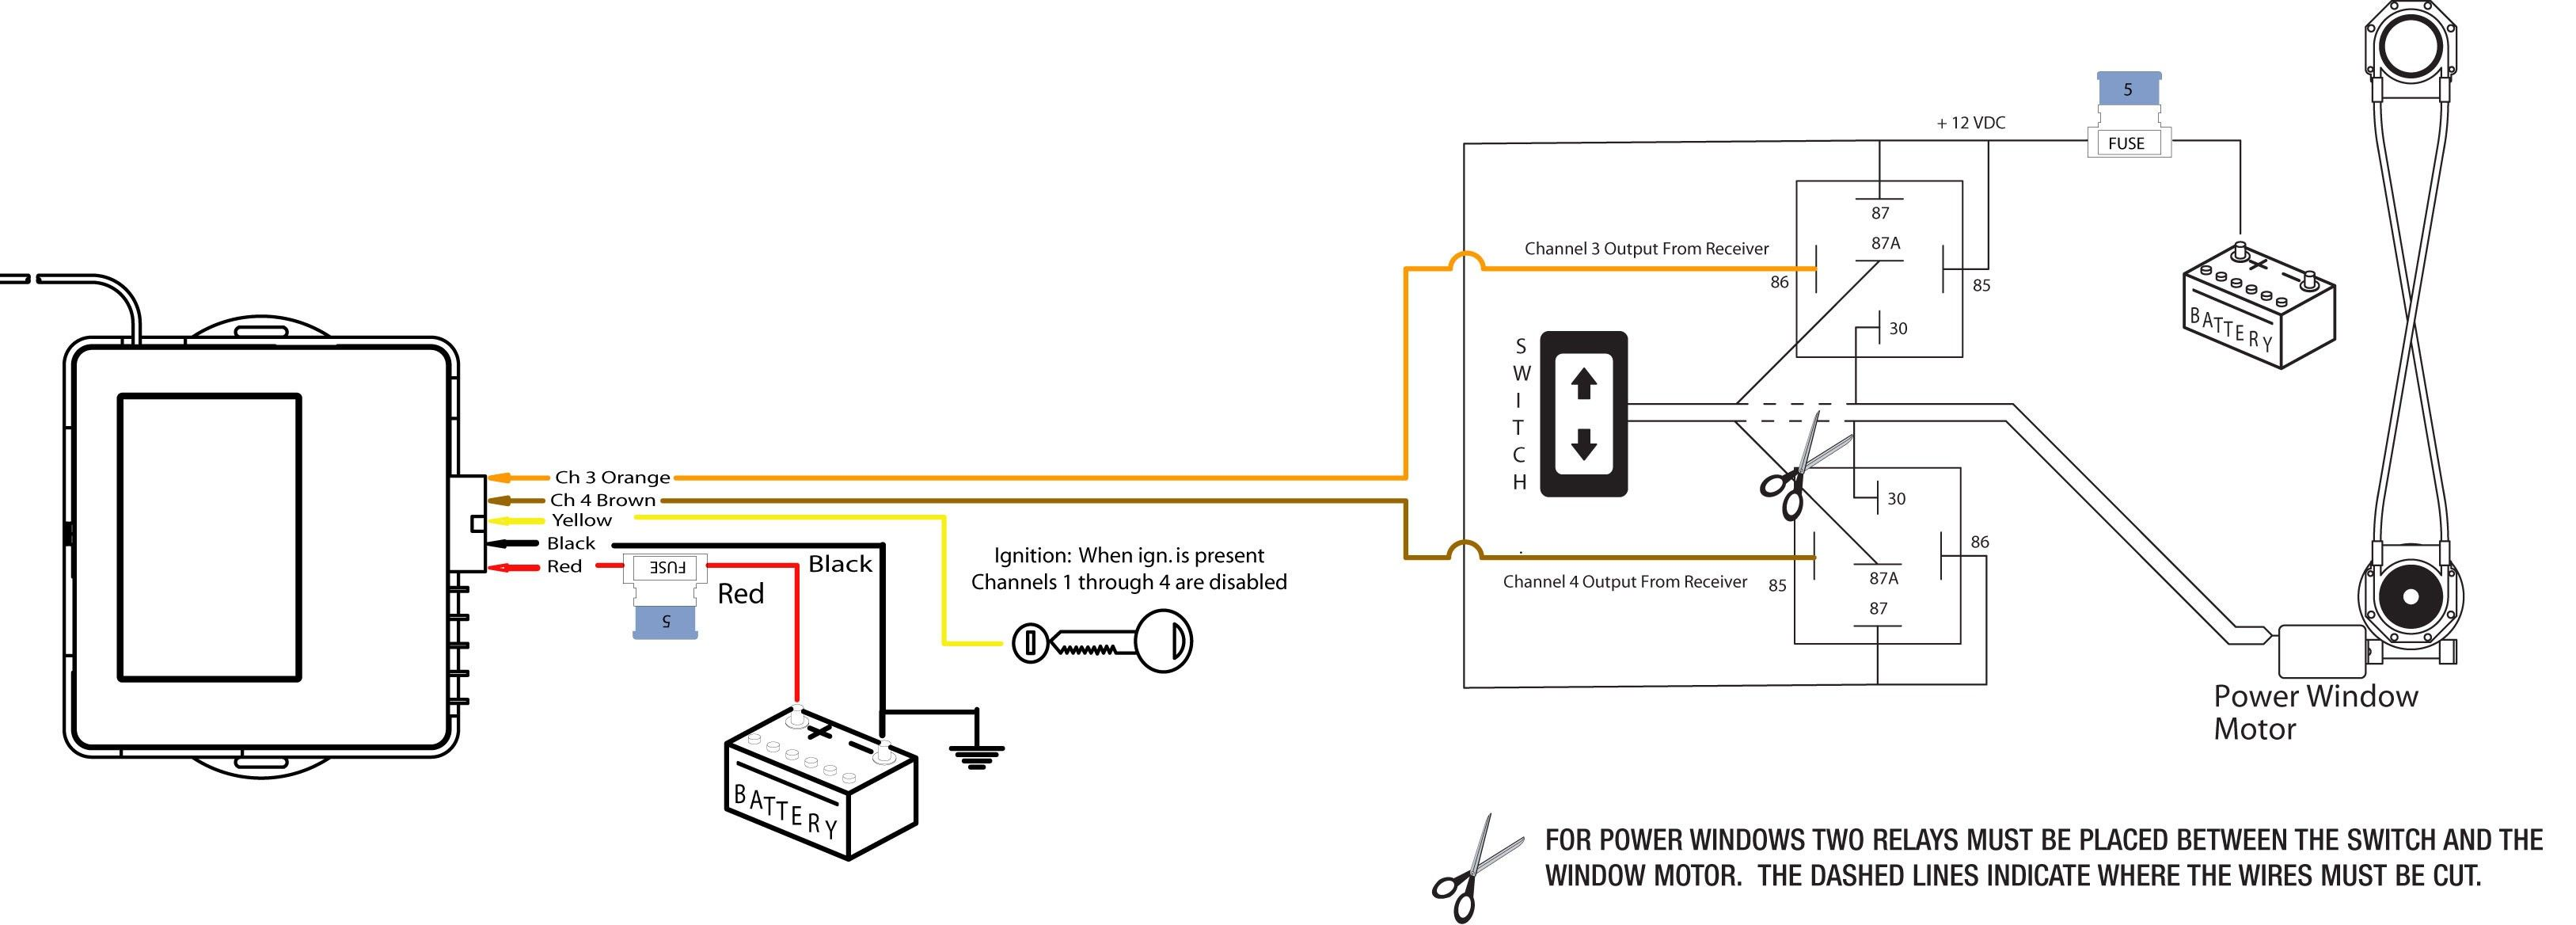 Unique 1999 Jeep Grand Cherokee Power Window Wiring